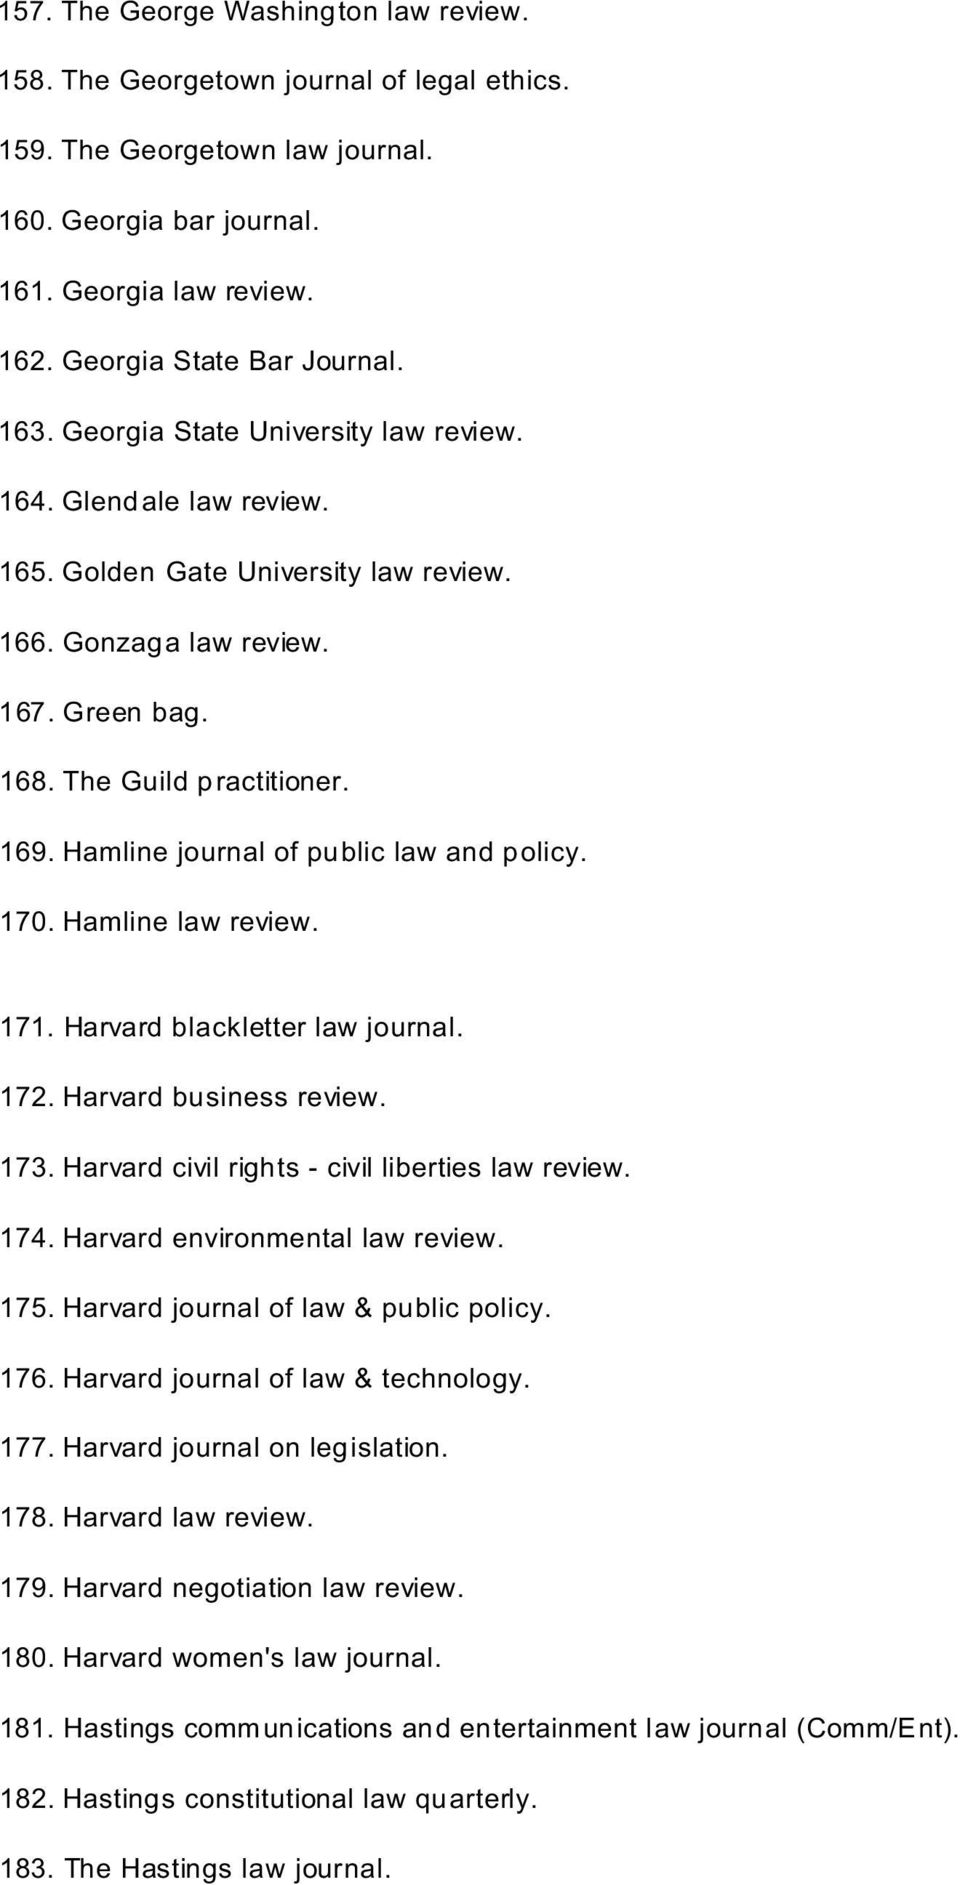 Hamline journal of public law and policy. 170. Hamline law review. 171. Harvard blackletter law journal. 172. Harvard business review. 173. Harvard civil rights - civil liberties law review. 174.